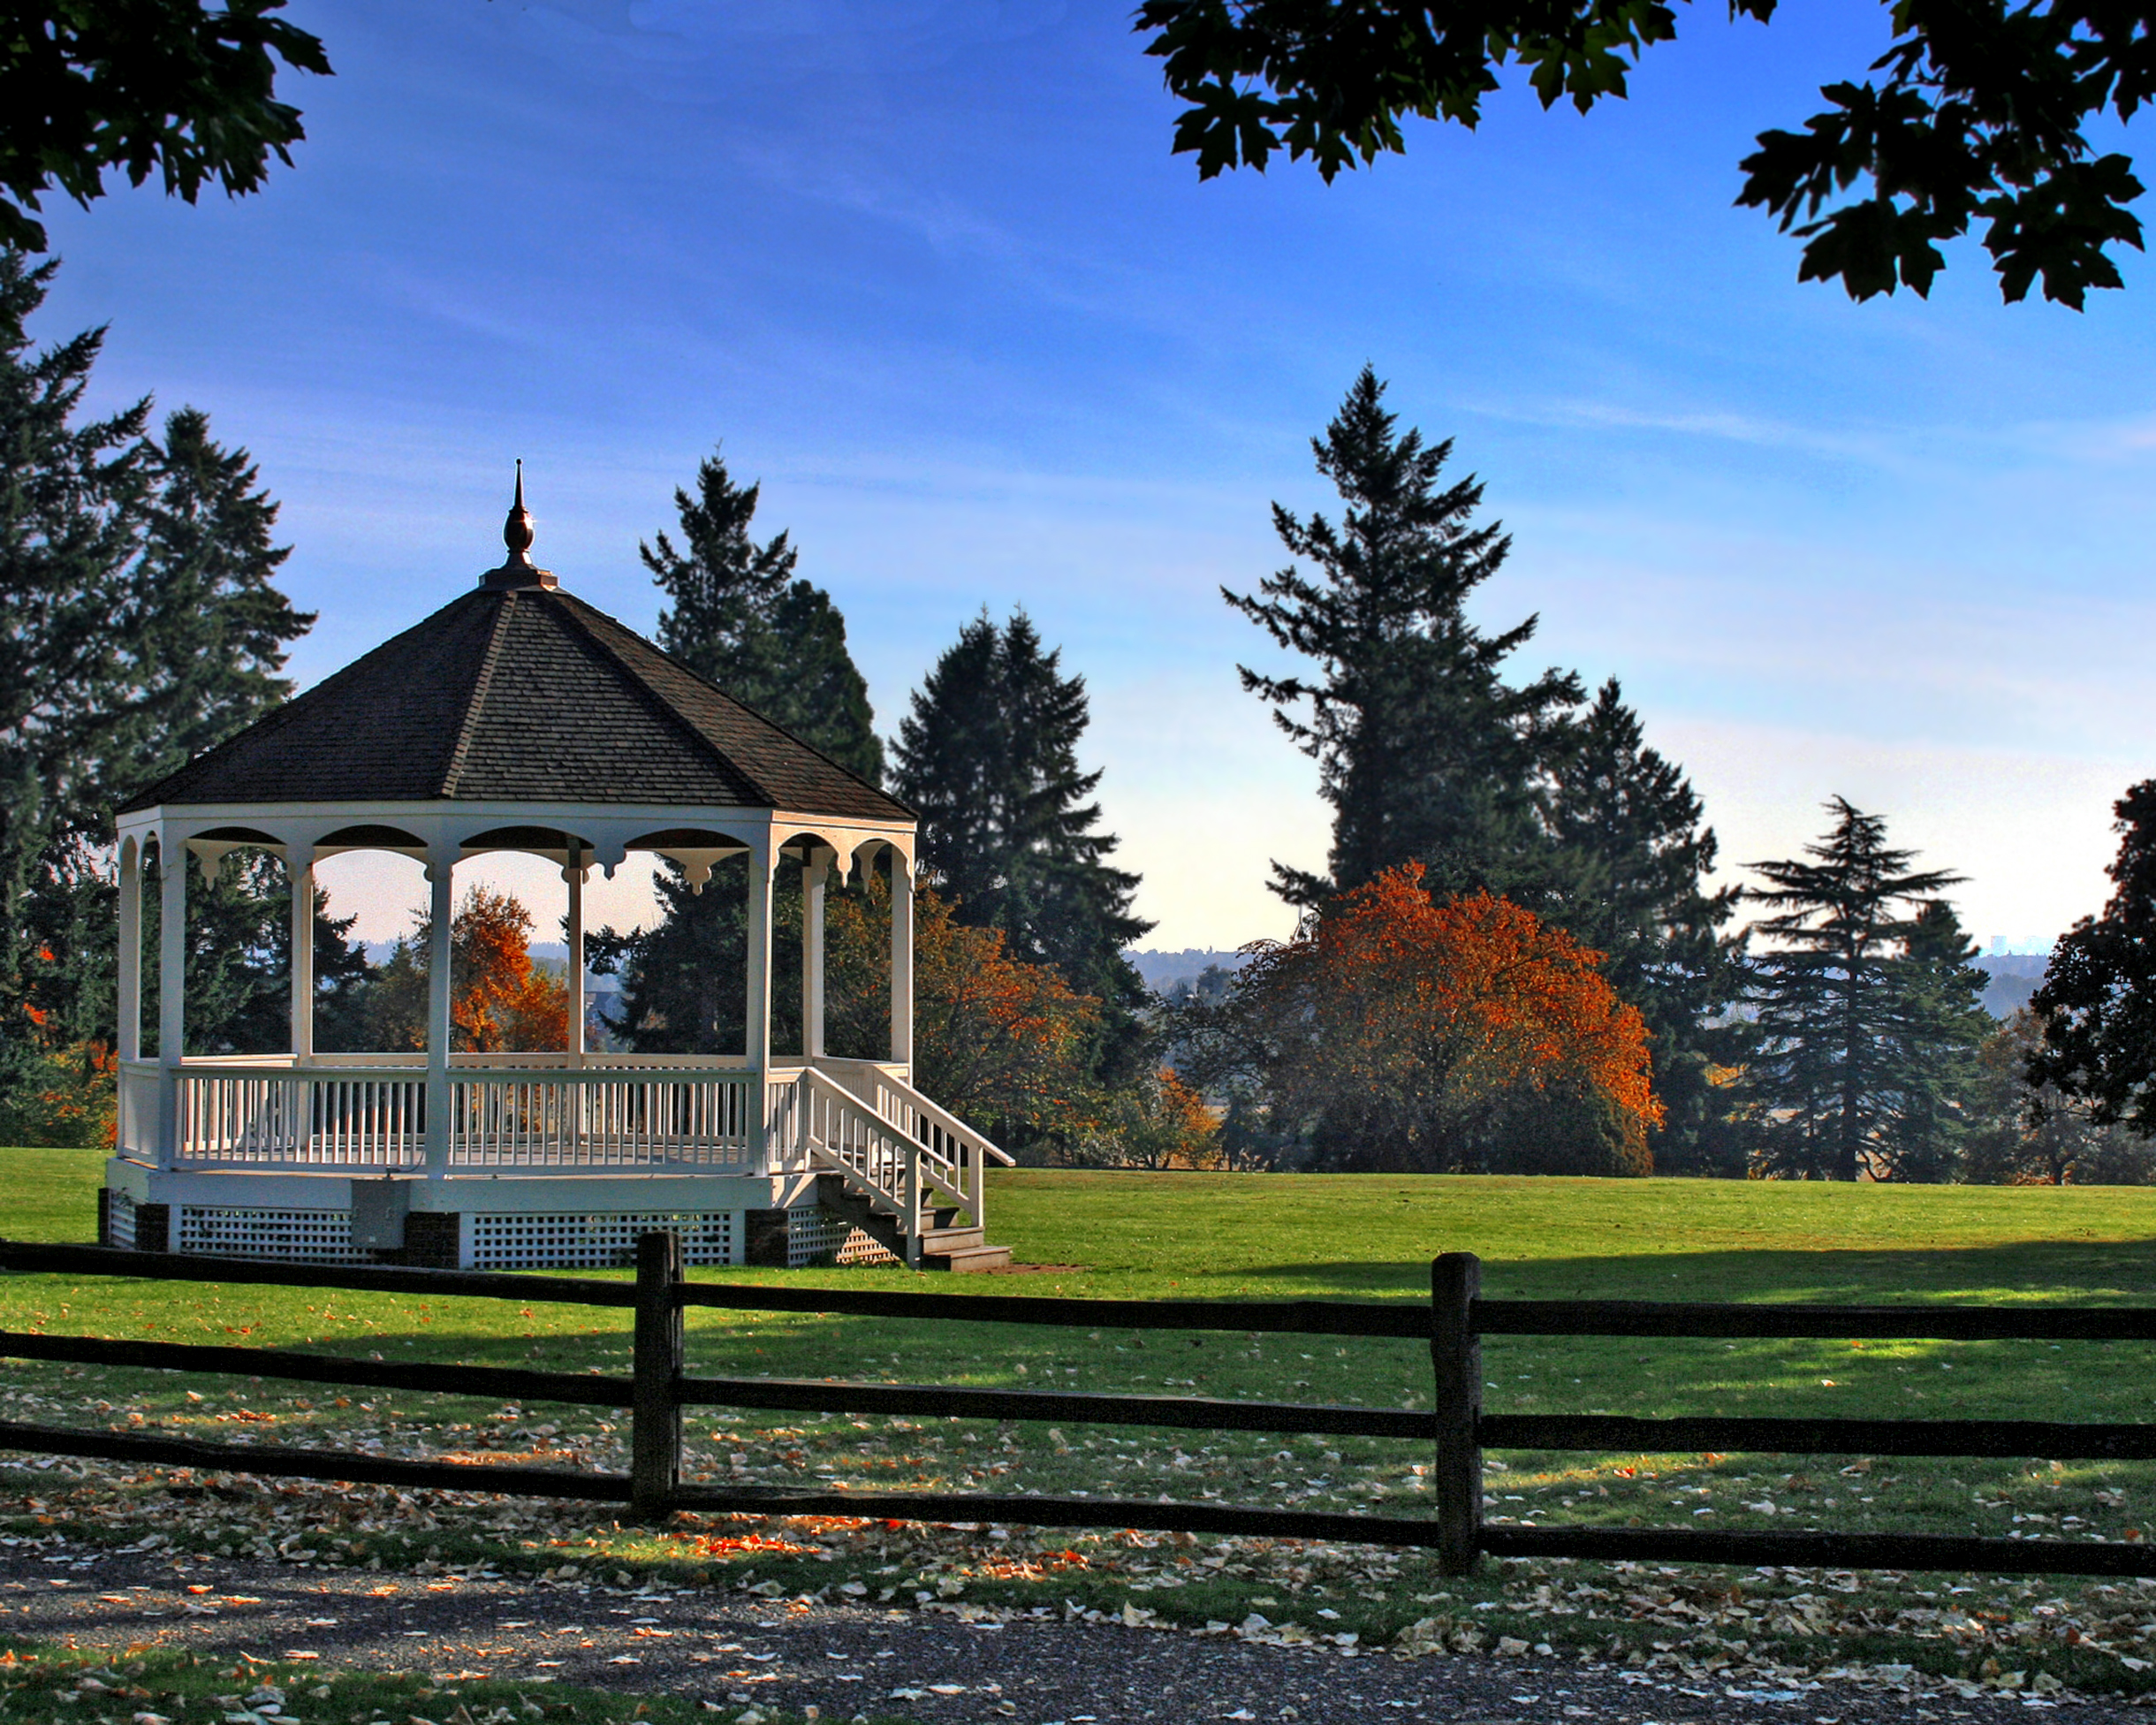 25 free things to do in vancouver wa